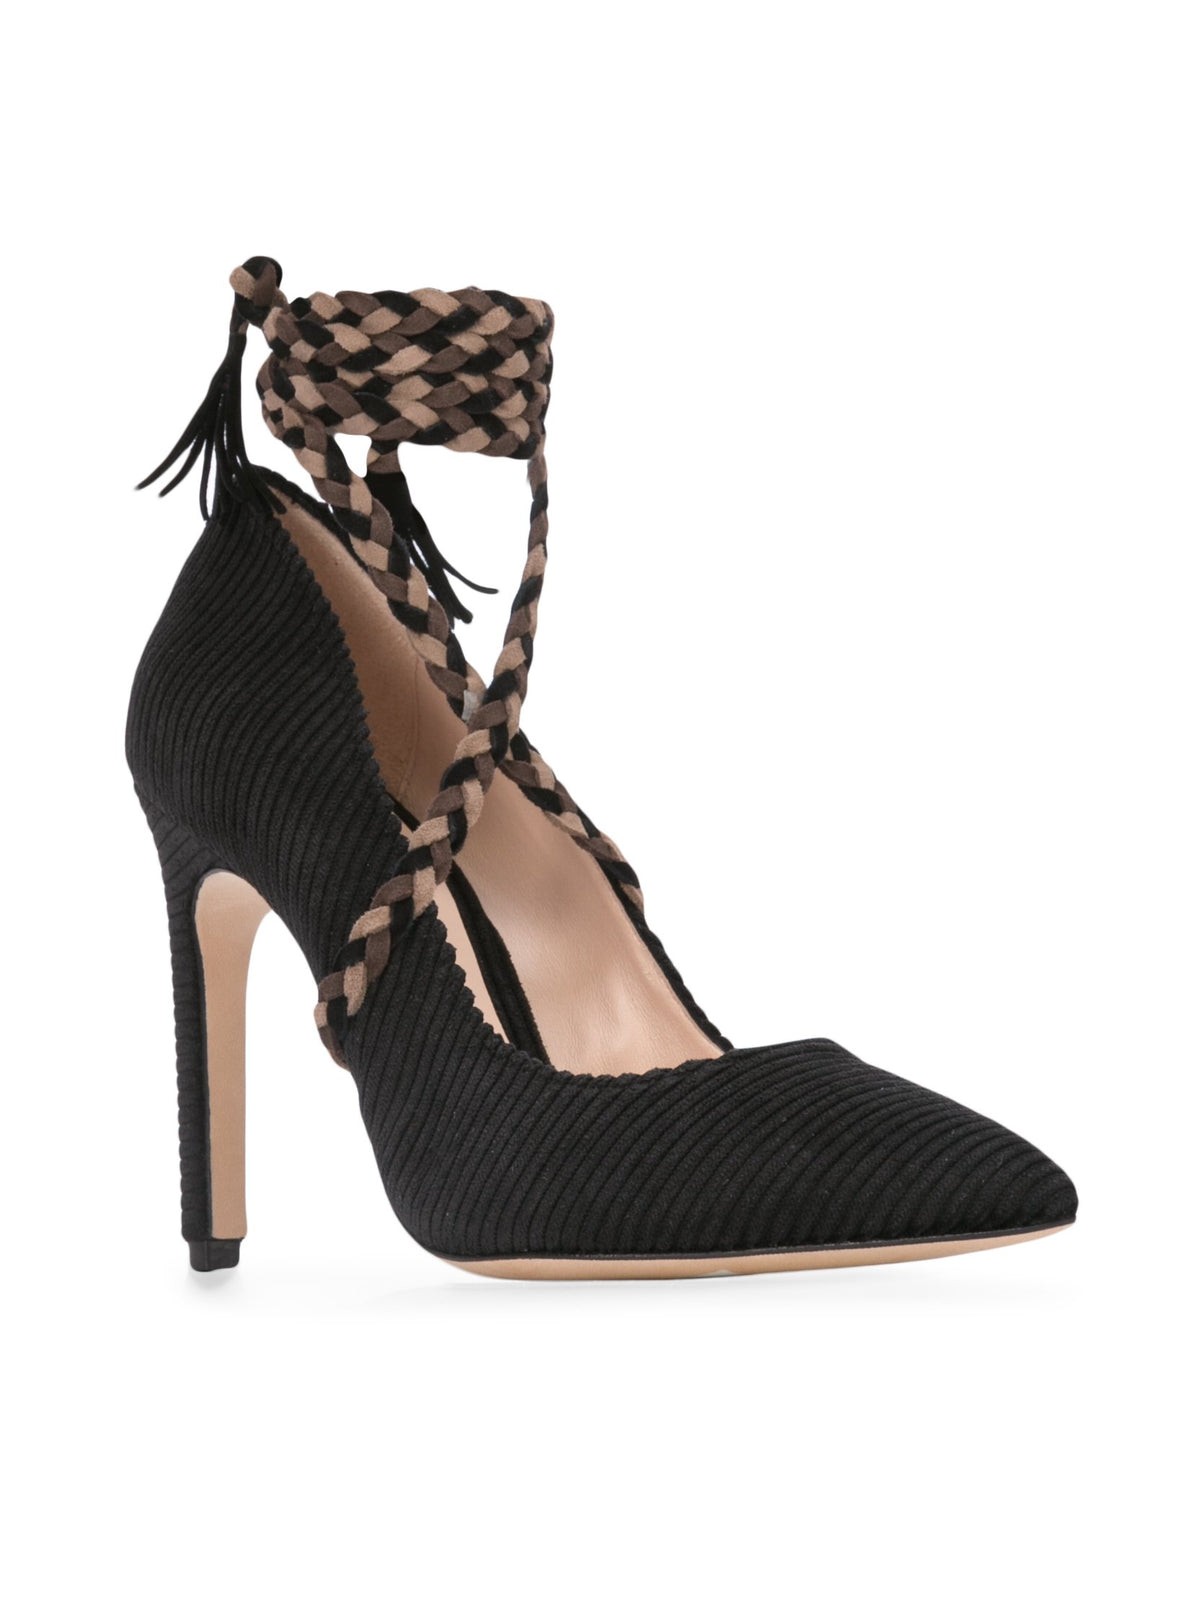 Cleopatra Pump - Black corduroy with removable suede wraps. Front Angle View